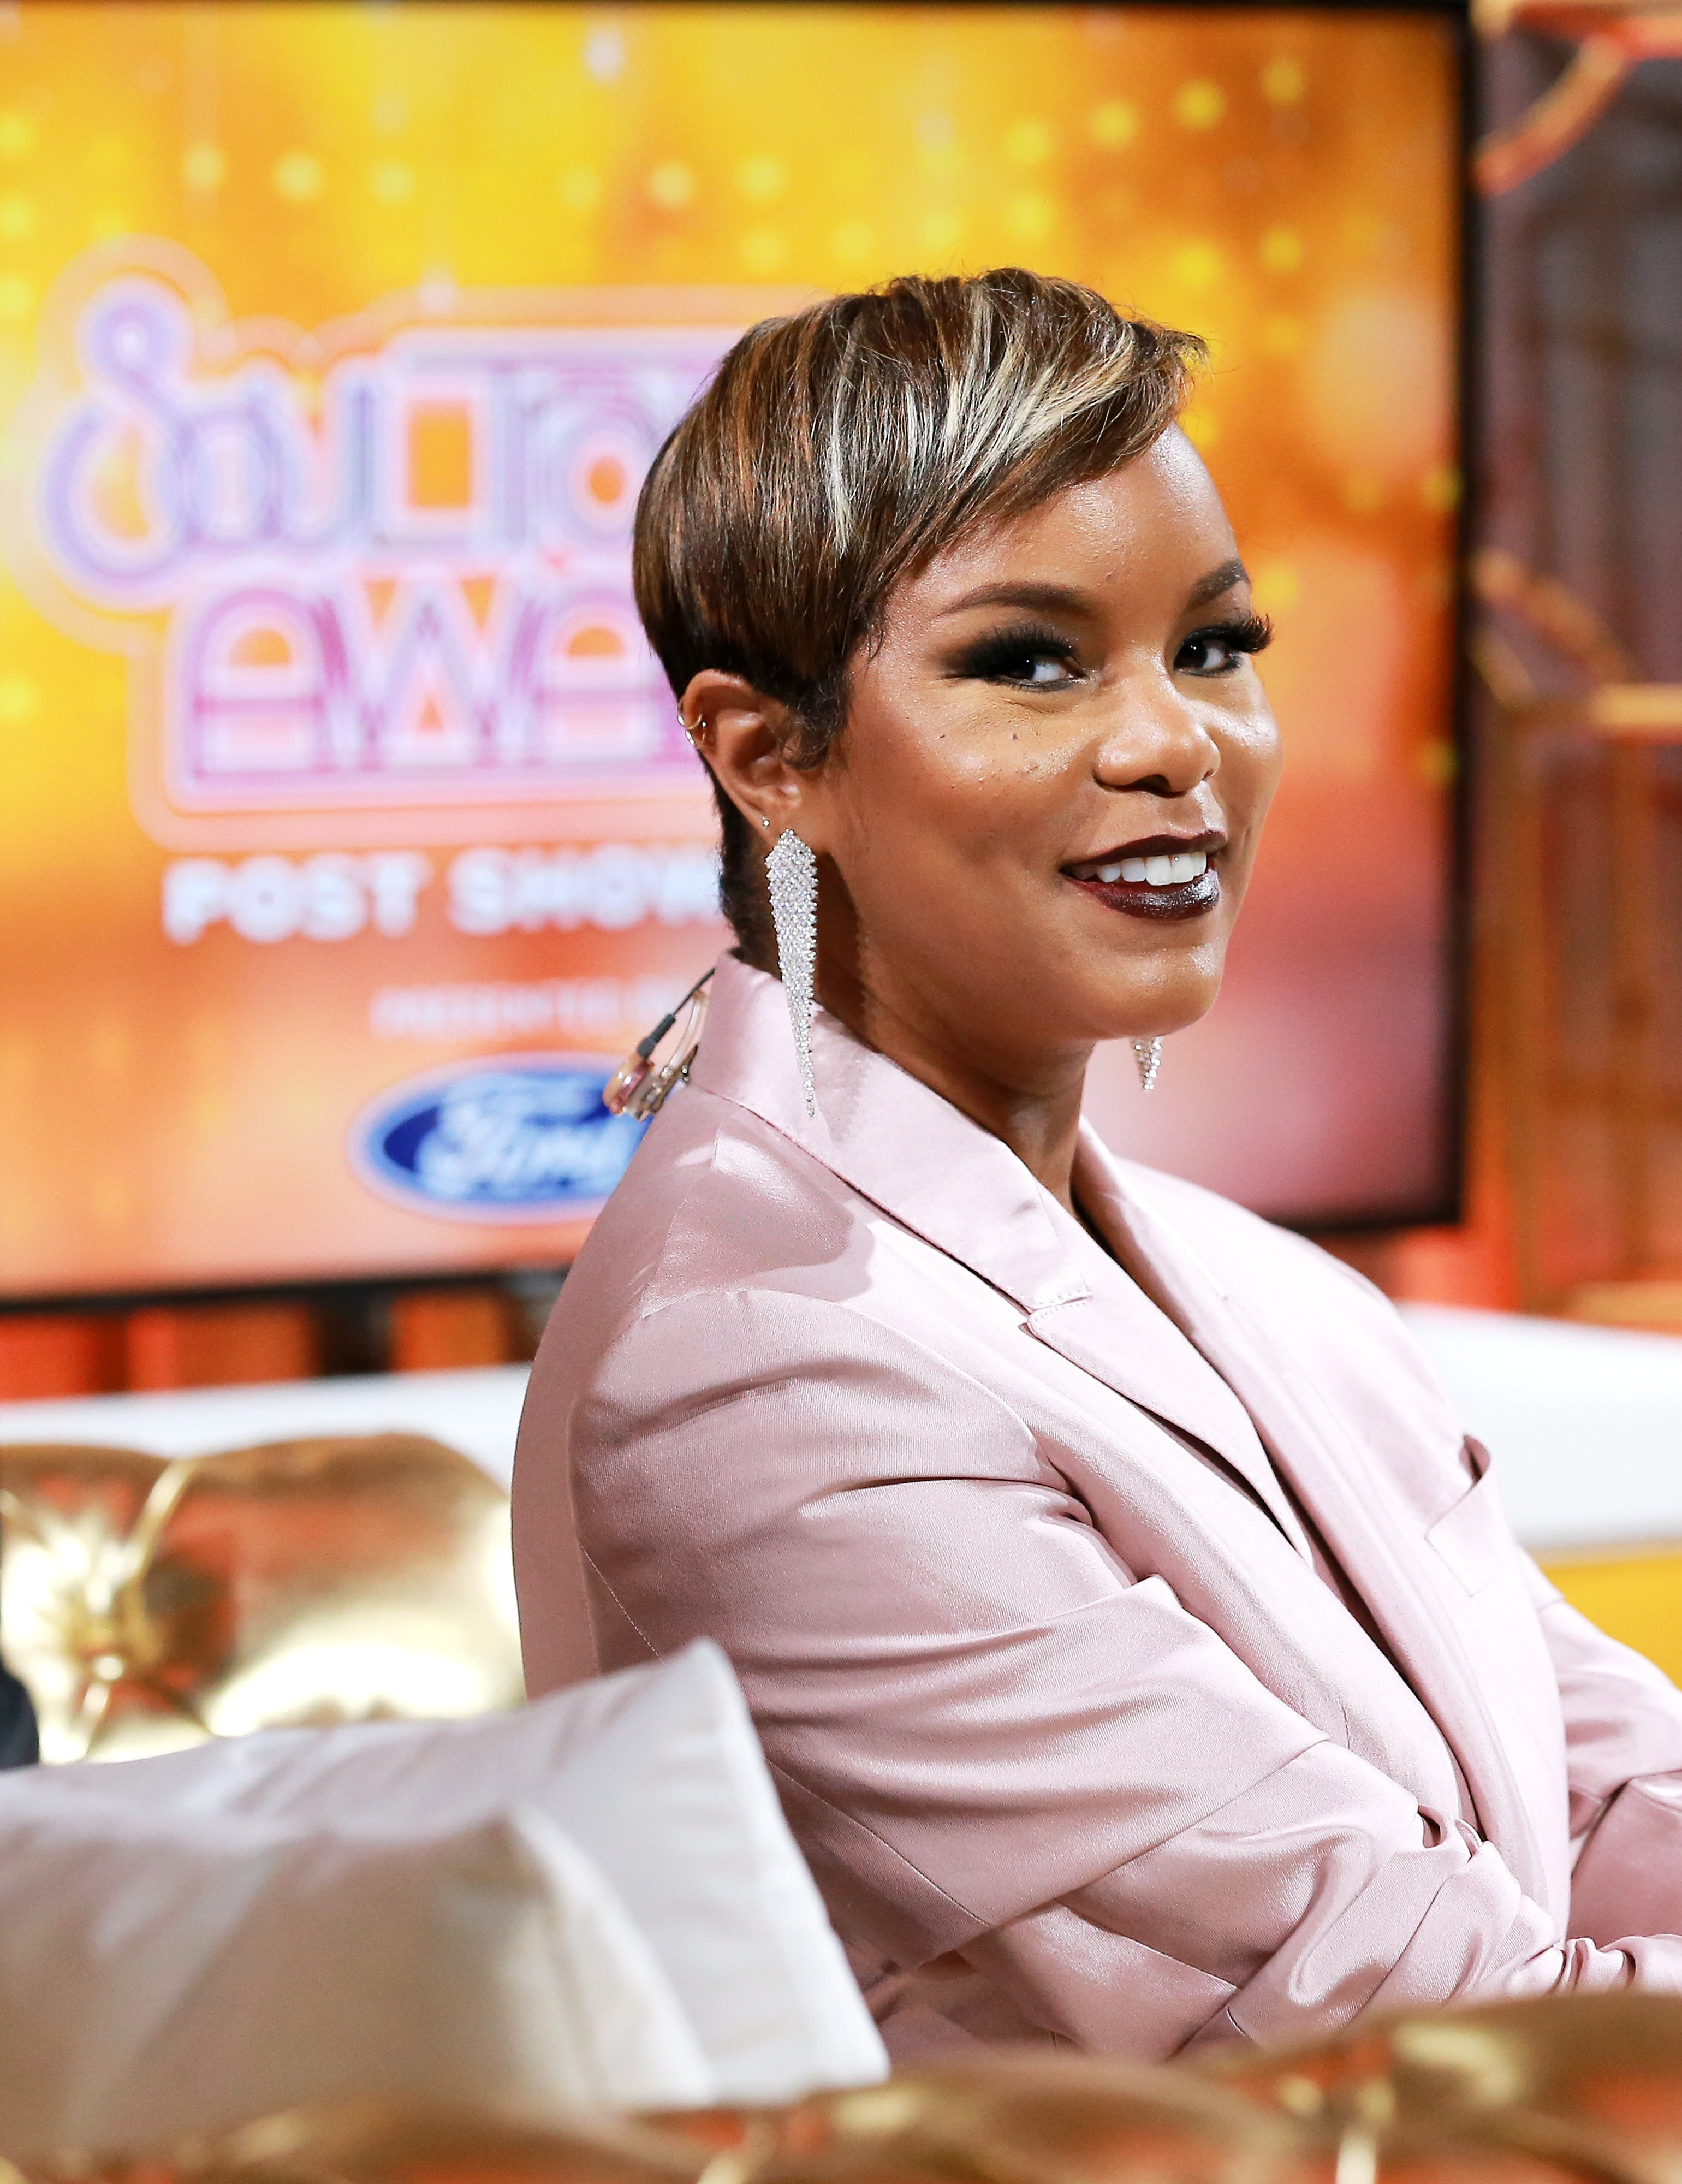 LeToya Luckett at the 2019 Soul Train Awards on November 17, 2019 in Las Vegas, Nevada. | Photo: Getty Images